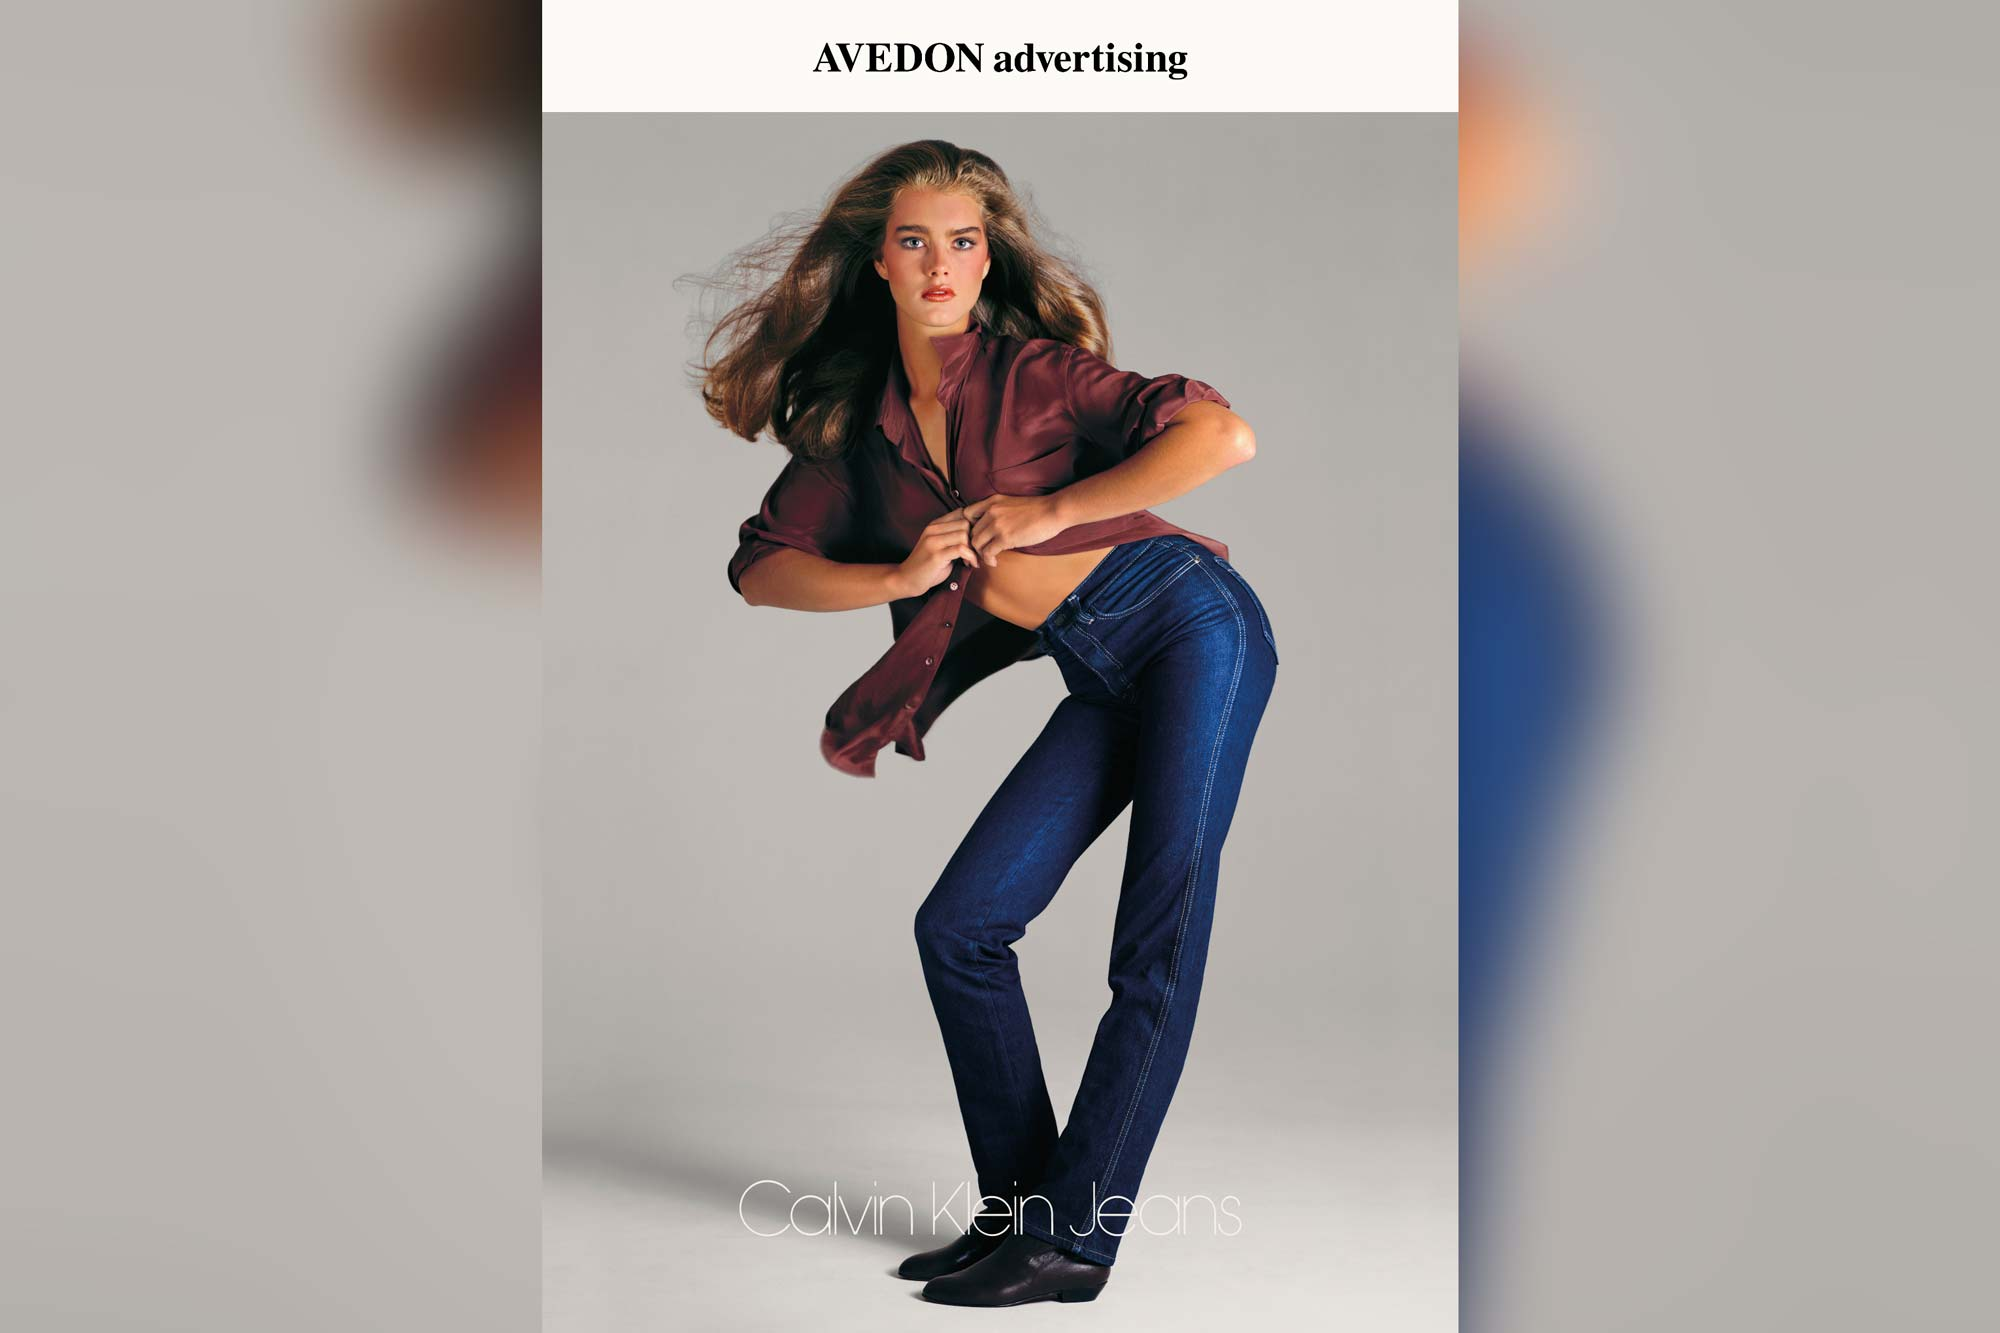 'Avedon Advertising' reveals a lesser-known side of iconic fashion and portrait photographer